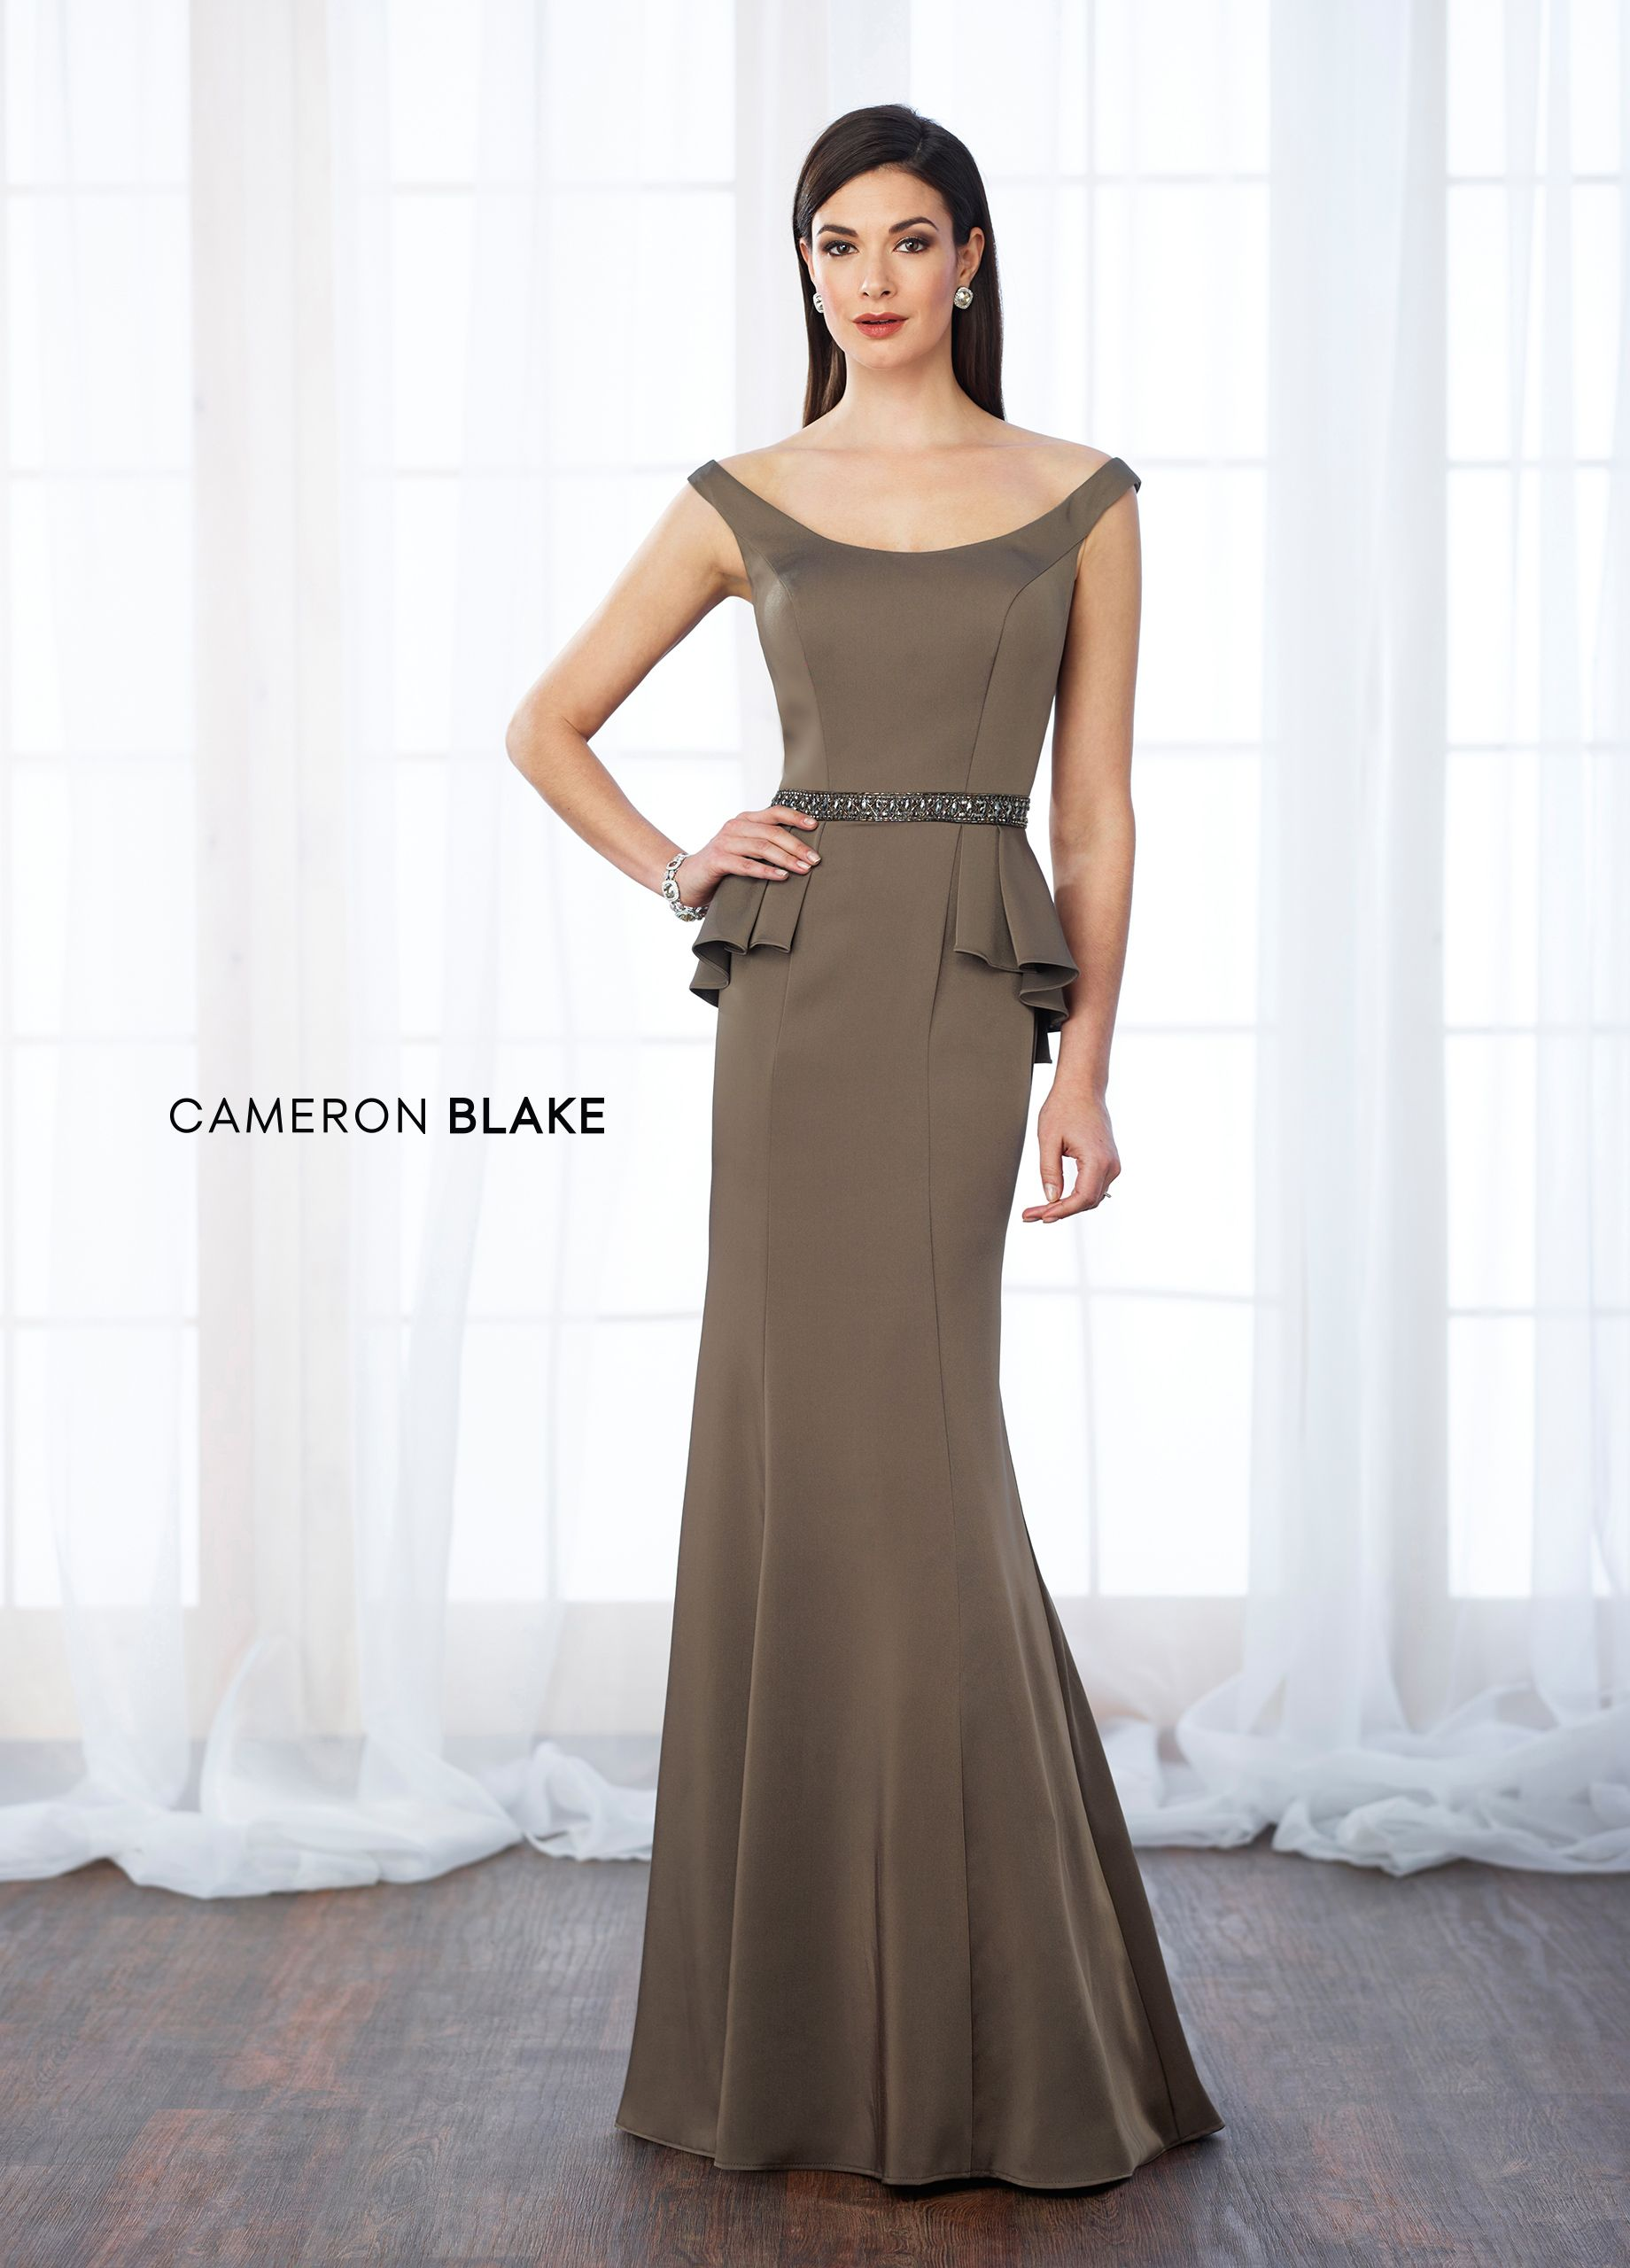 9bf388da976 Cameron Blake 217640 - Tip-of-the-shoulder crepe fit and flare gown with  front and back wide scoop necklines